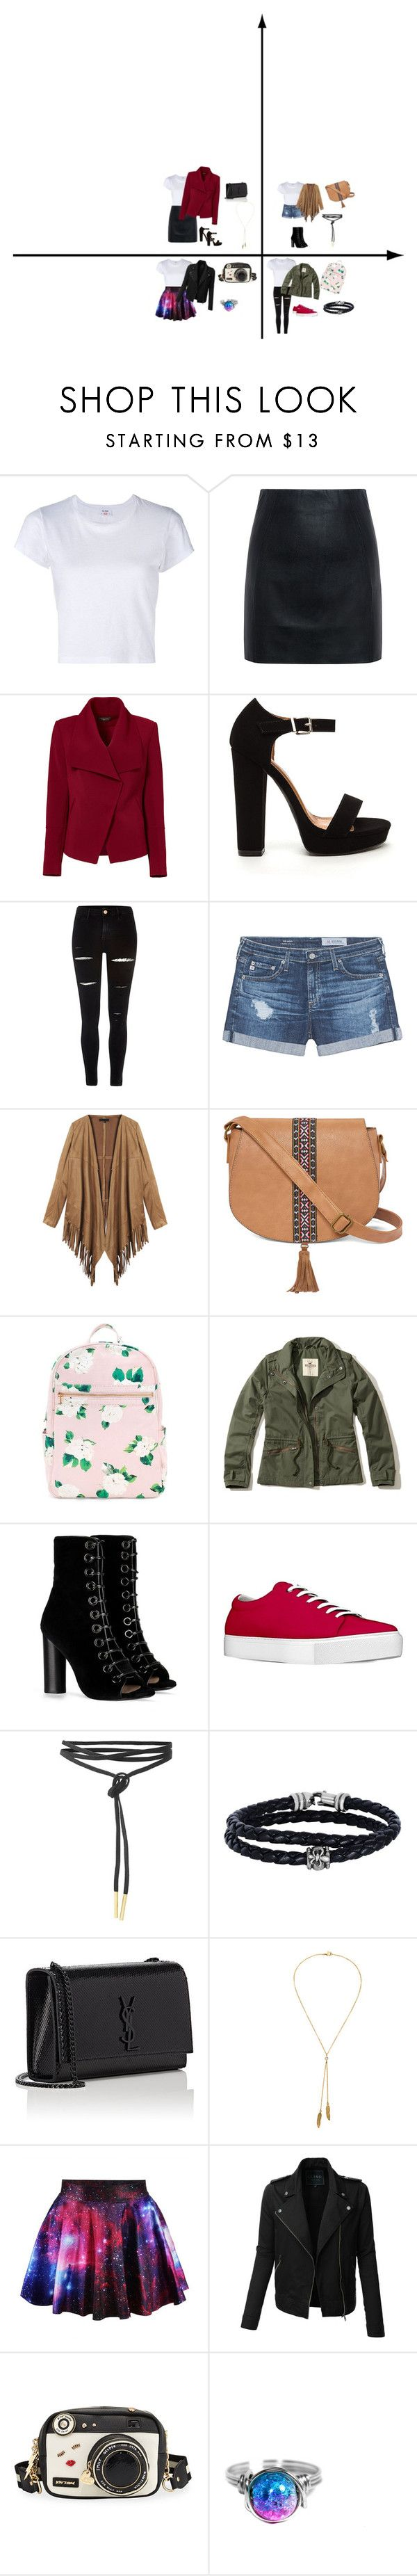 """""""1 morceau 4 outfits 1"""" by emy-belle on Polyvore featuring mode, RE/DONE, McQ by Alexander McQueen, Greylin, River Island, AG Adriano Goldschmied, T-shirt & Jeans, Hollister Co., Barbara Bui et Phillip Gavriel"""